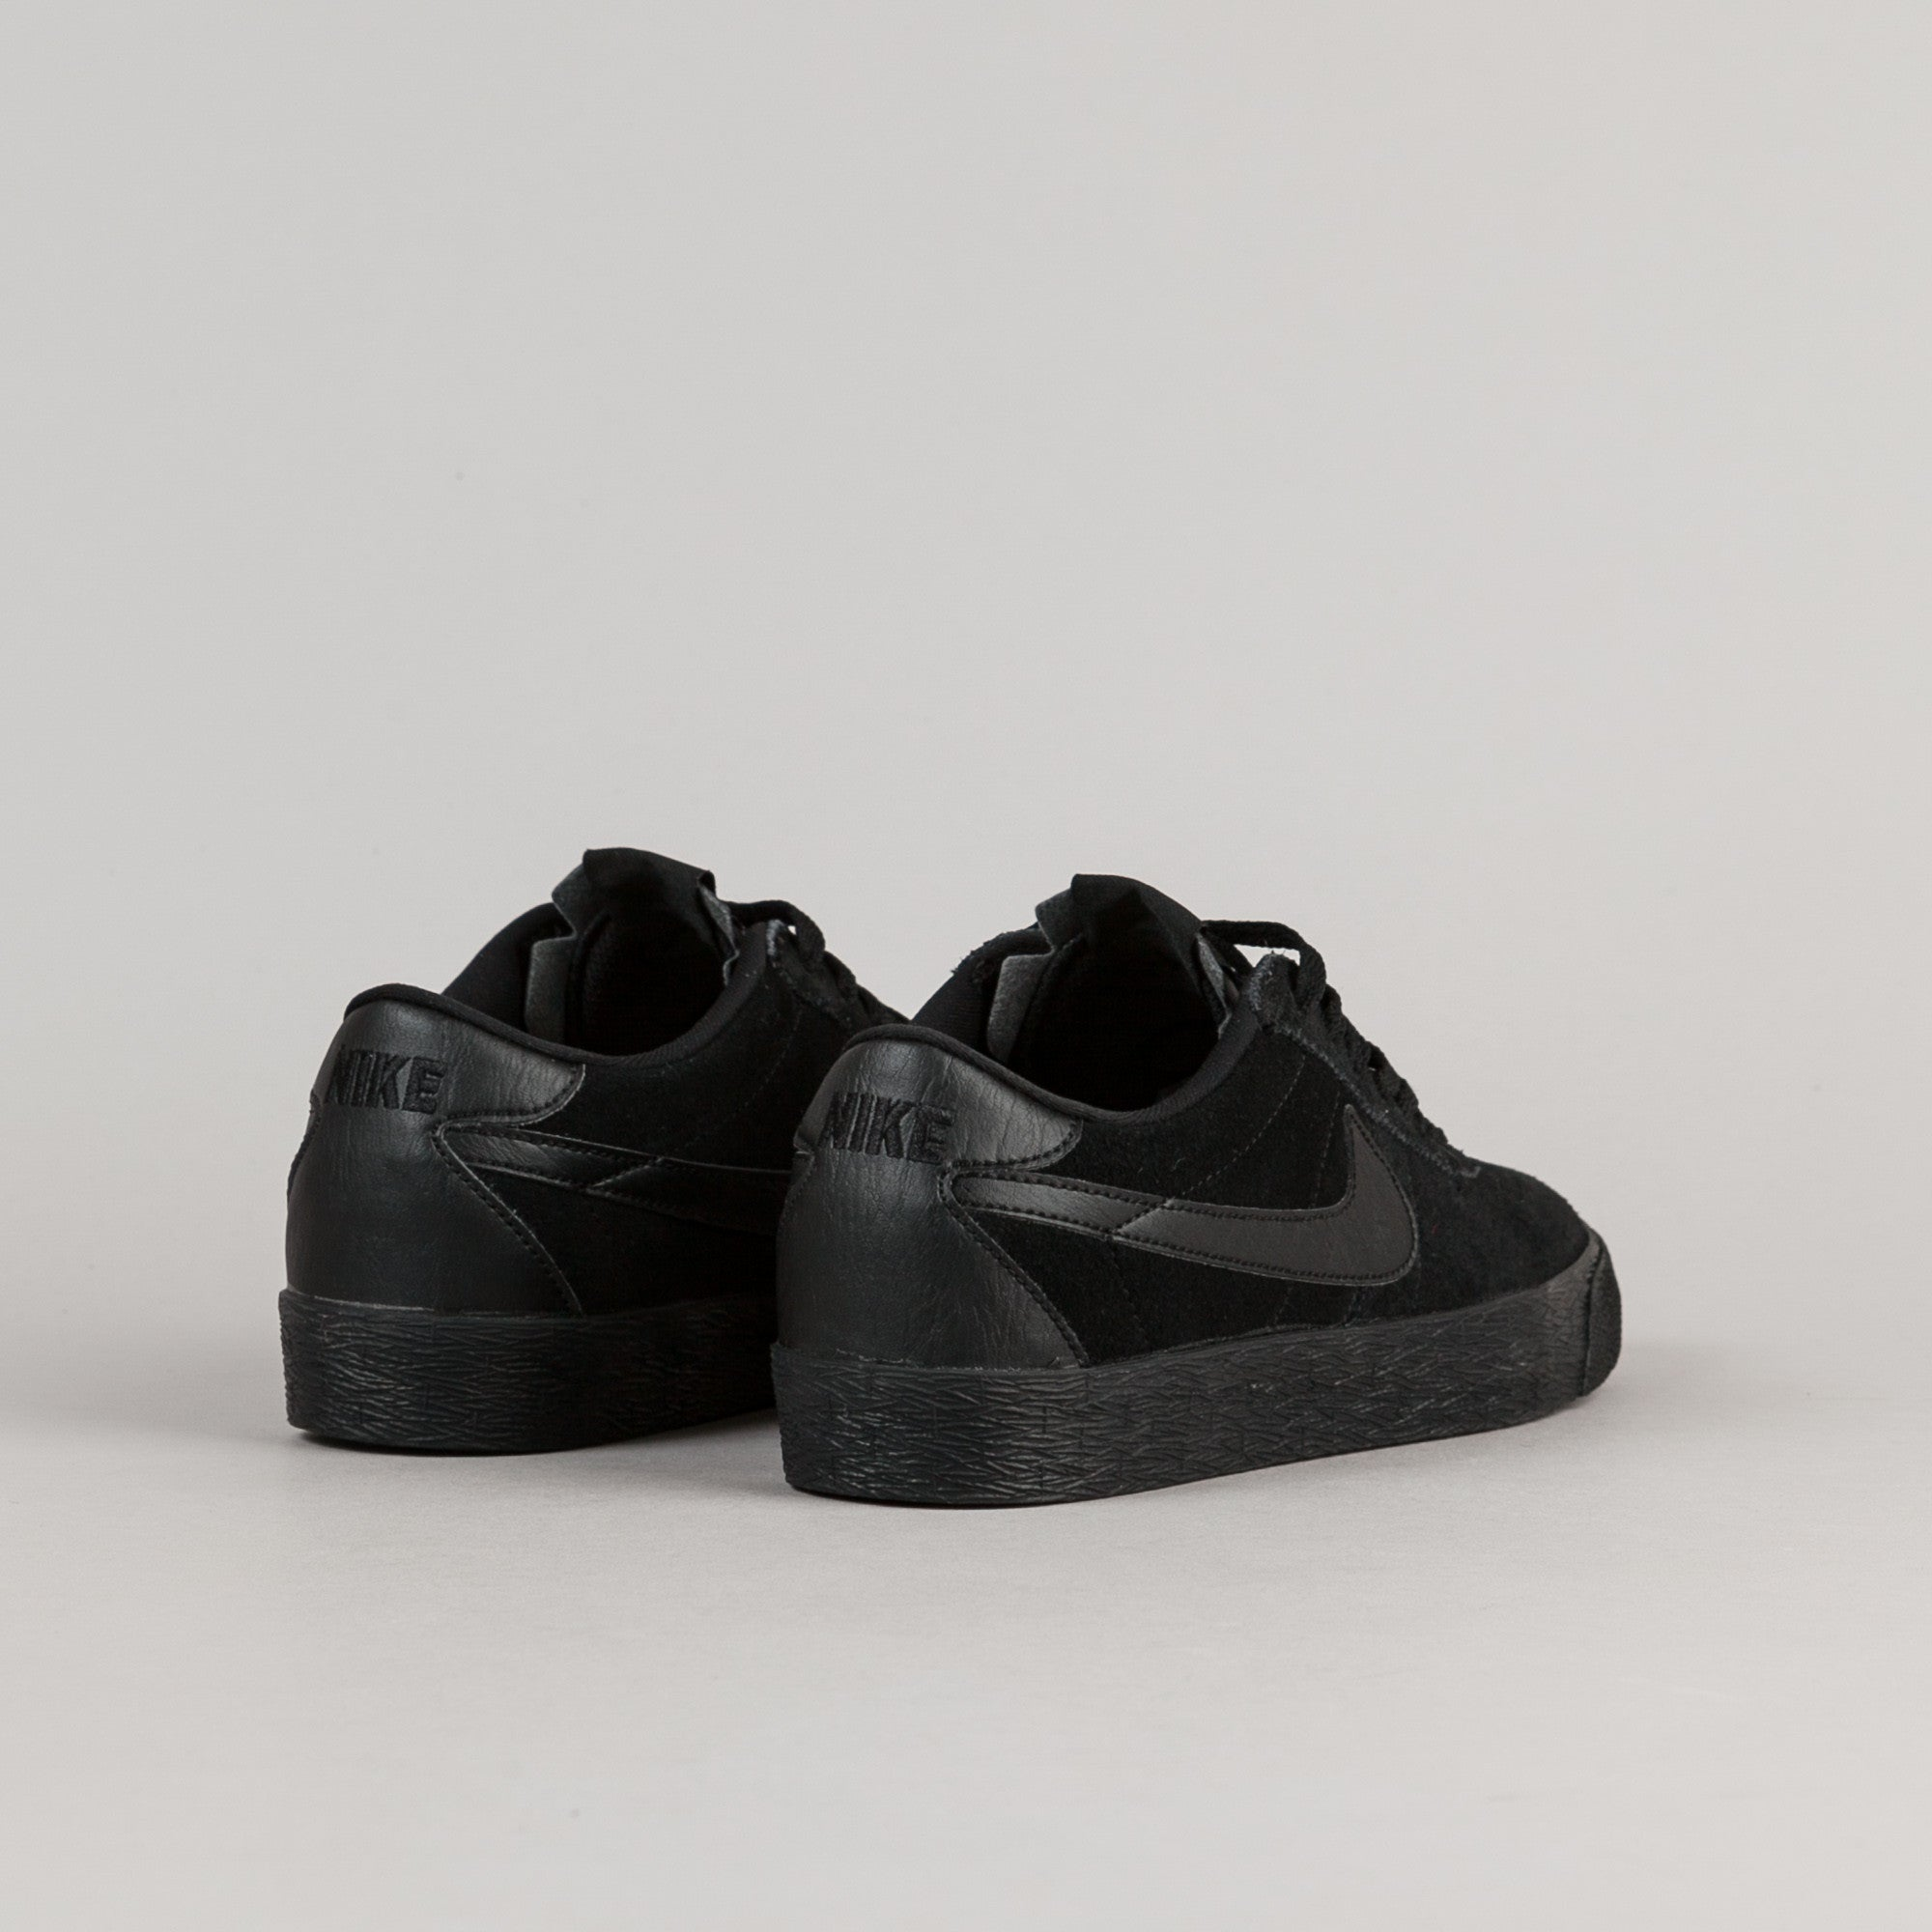 Nike SB Bruin Premium Shoes - Black / Black - Anthracite - Black